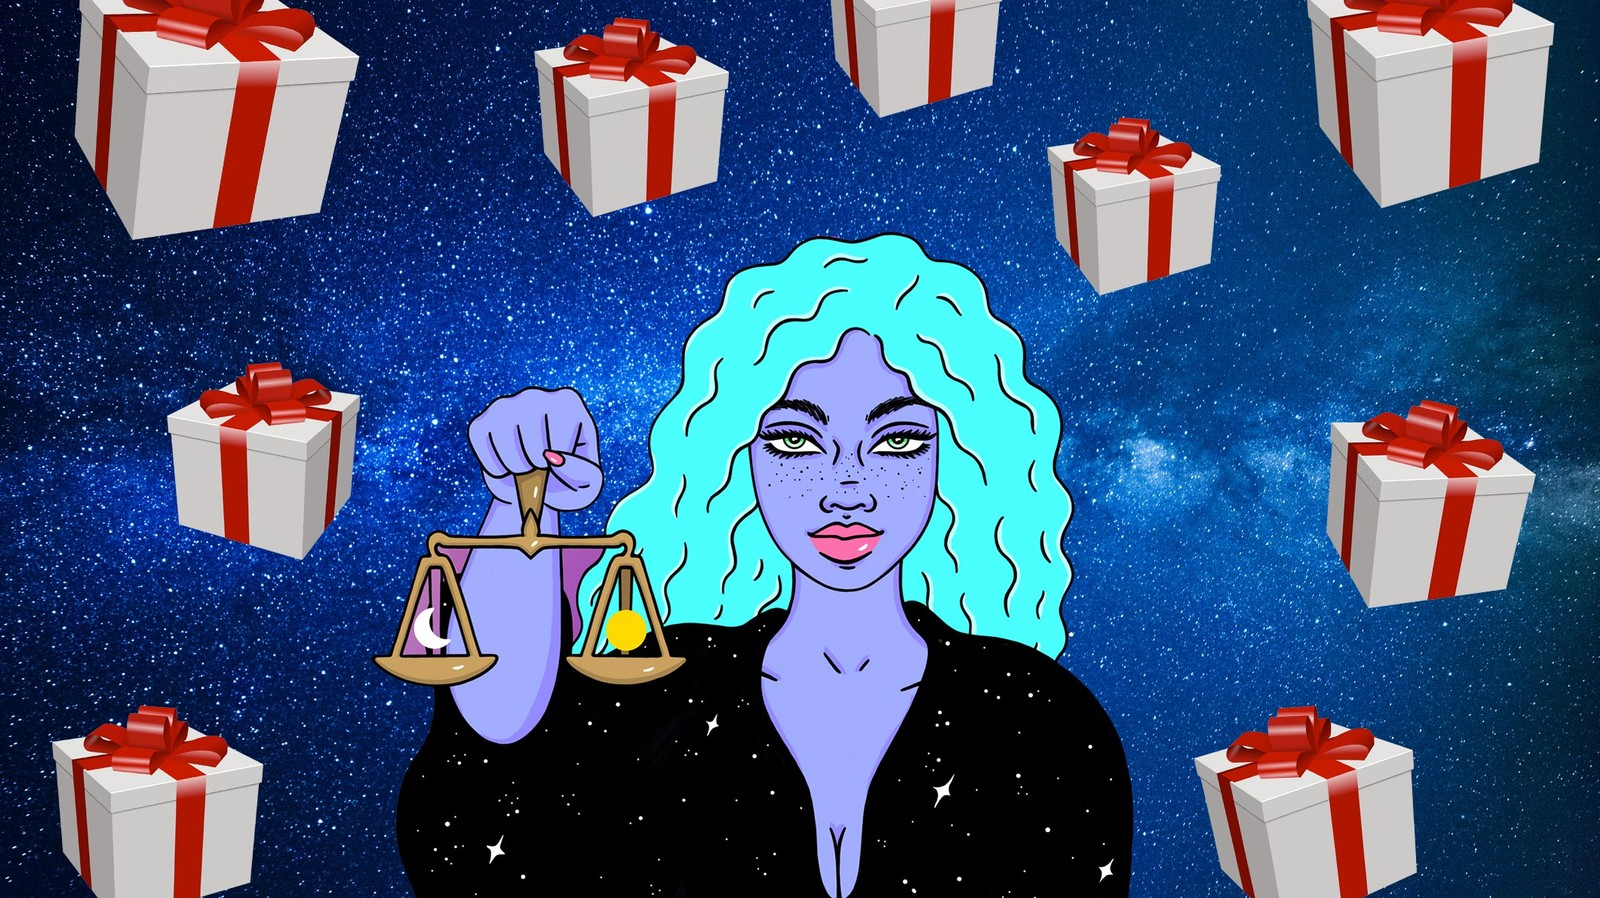 Your Gift Guide for Libra, a Sign that Loves Love but Hates Committing